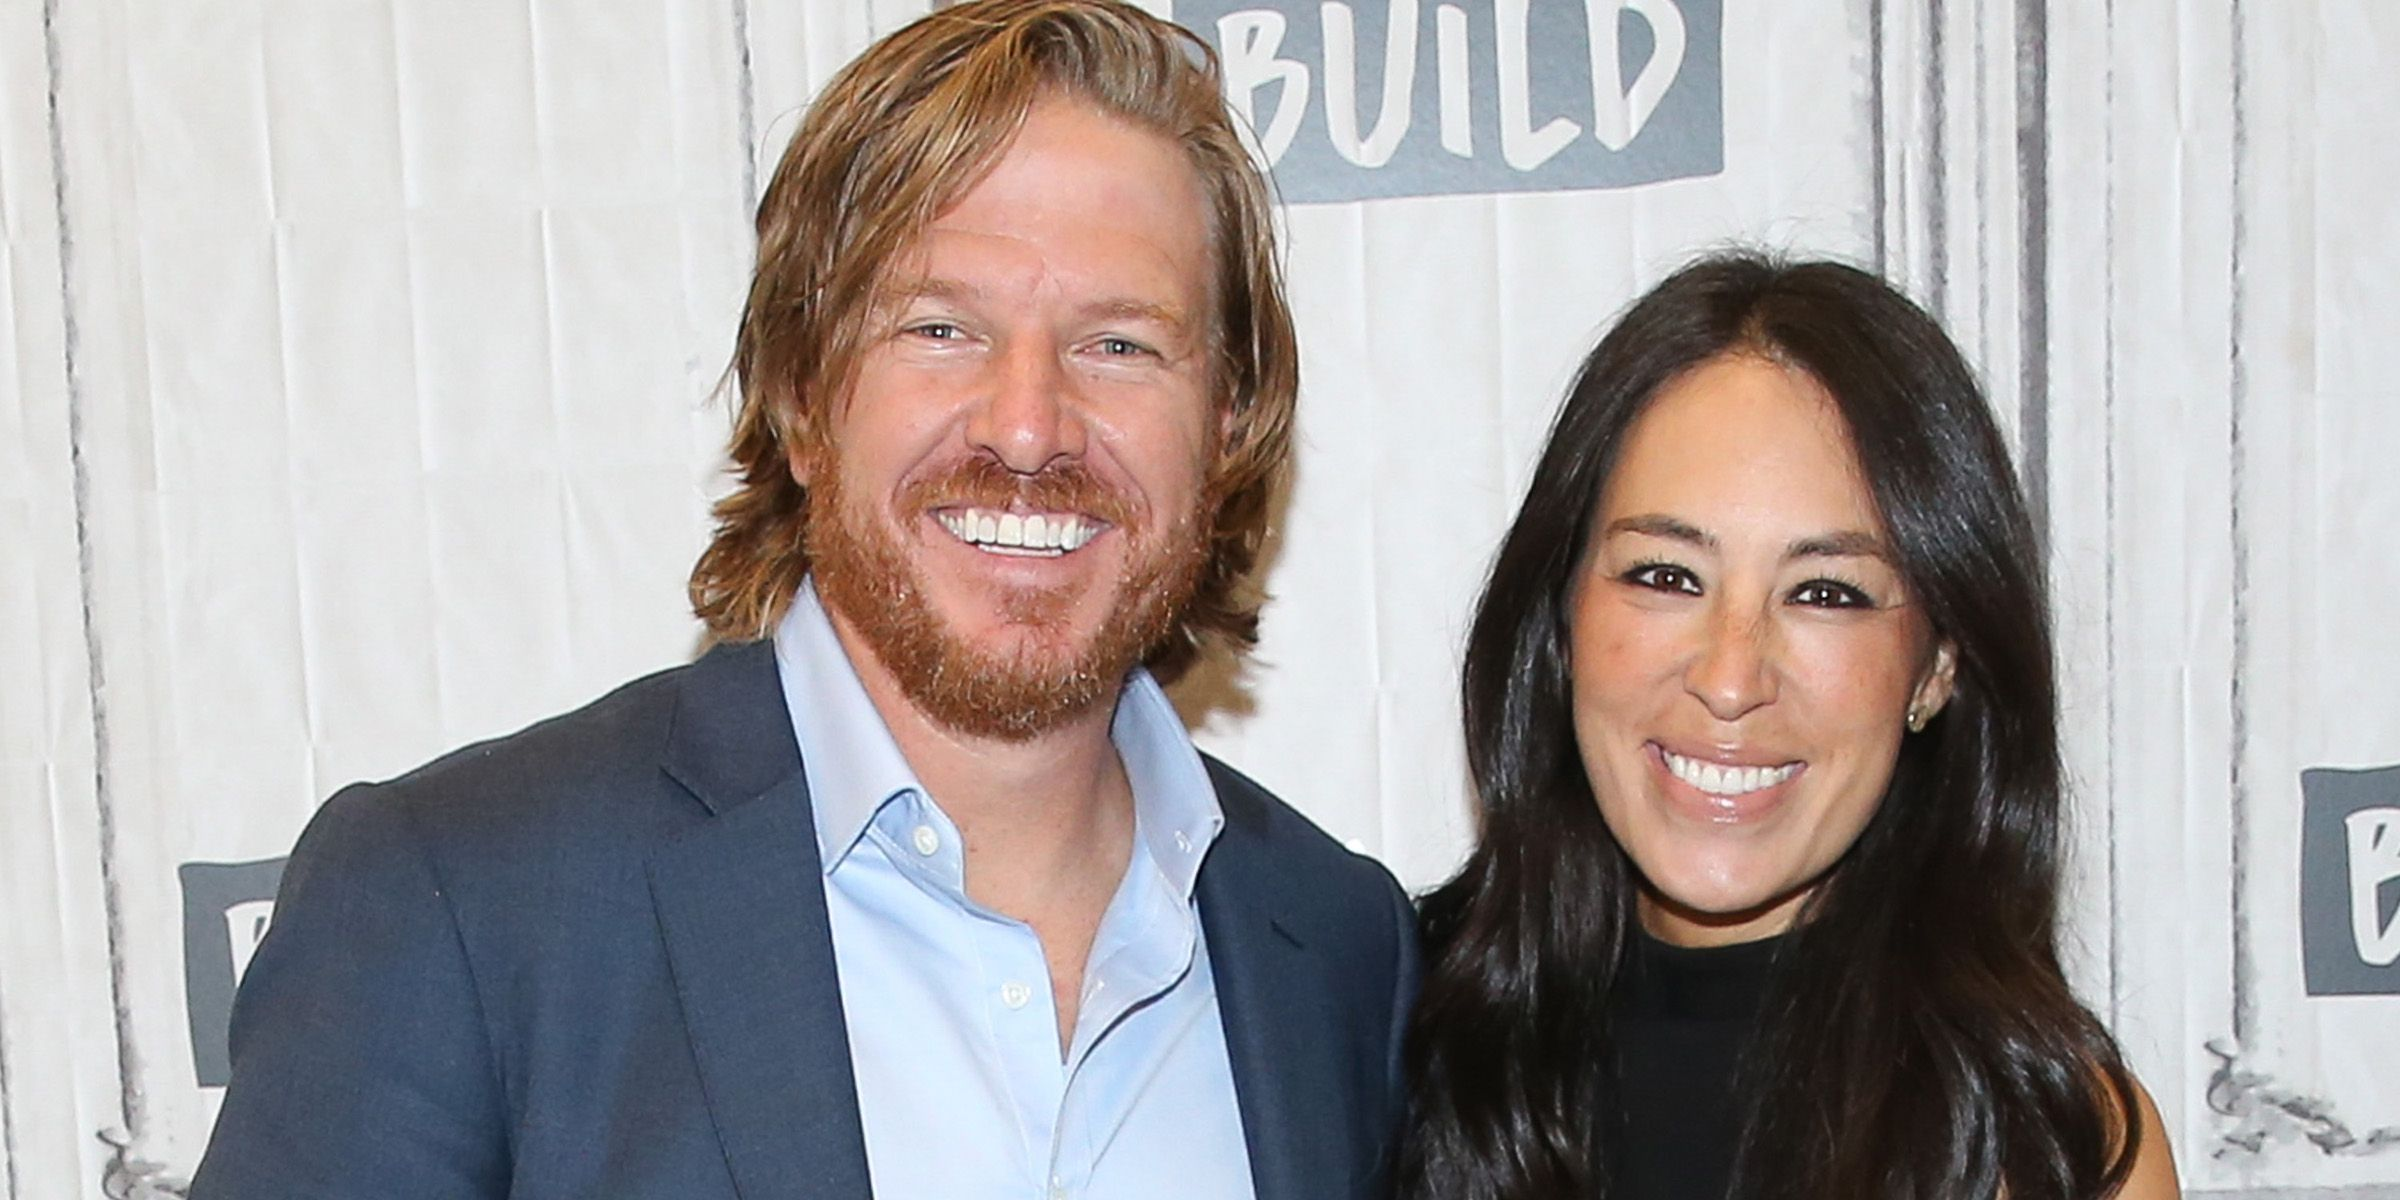 This Is How Much Chip and Joanna Are Spending on Their New Restaurant